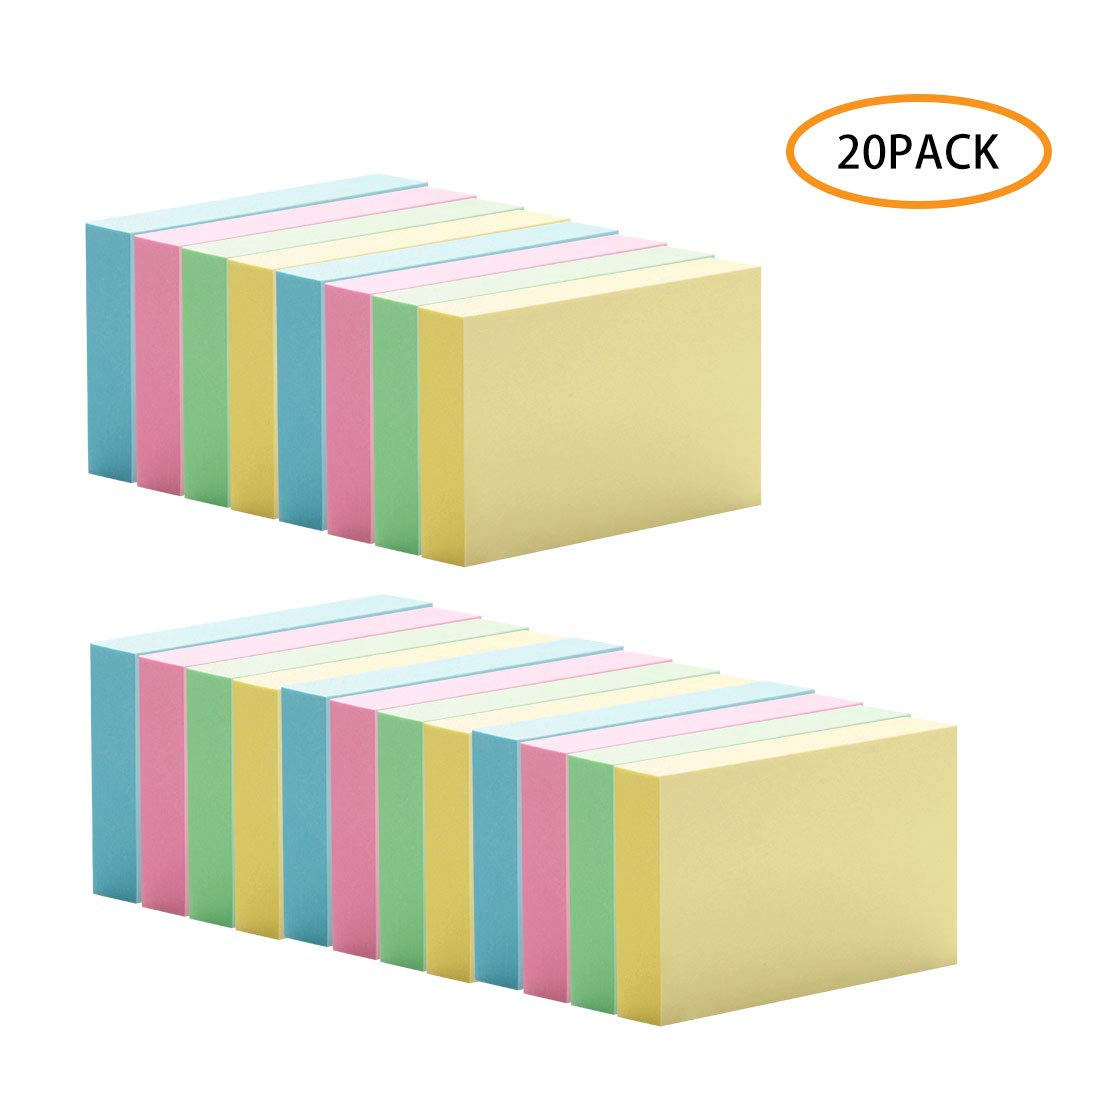 194db833fa06 20 Pad Mini Sticky Notes, 1 1/2 x 2 Inch Self- Stick Notes, 4 Candy Colors,  Easy To Post for Home, Office, Notebook, 100 Sheets/ pad